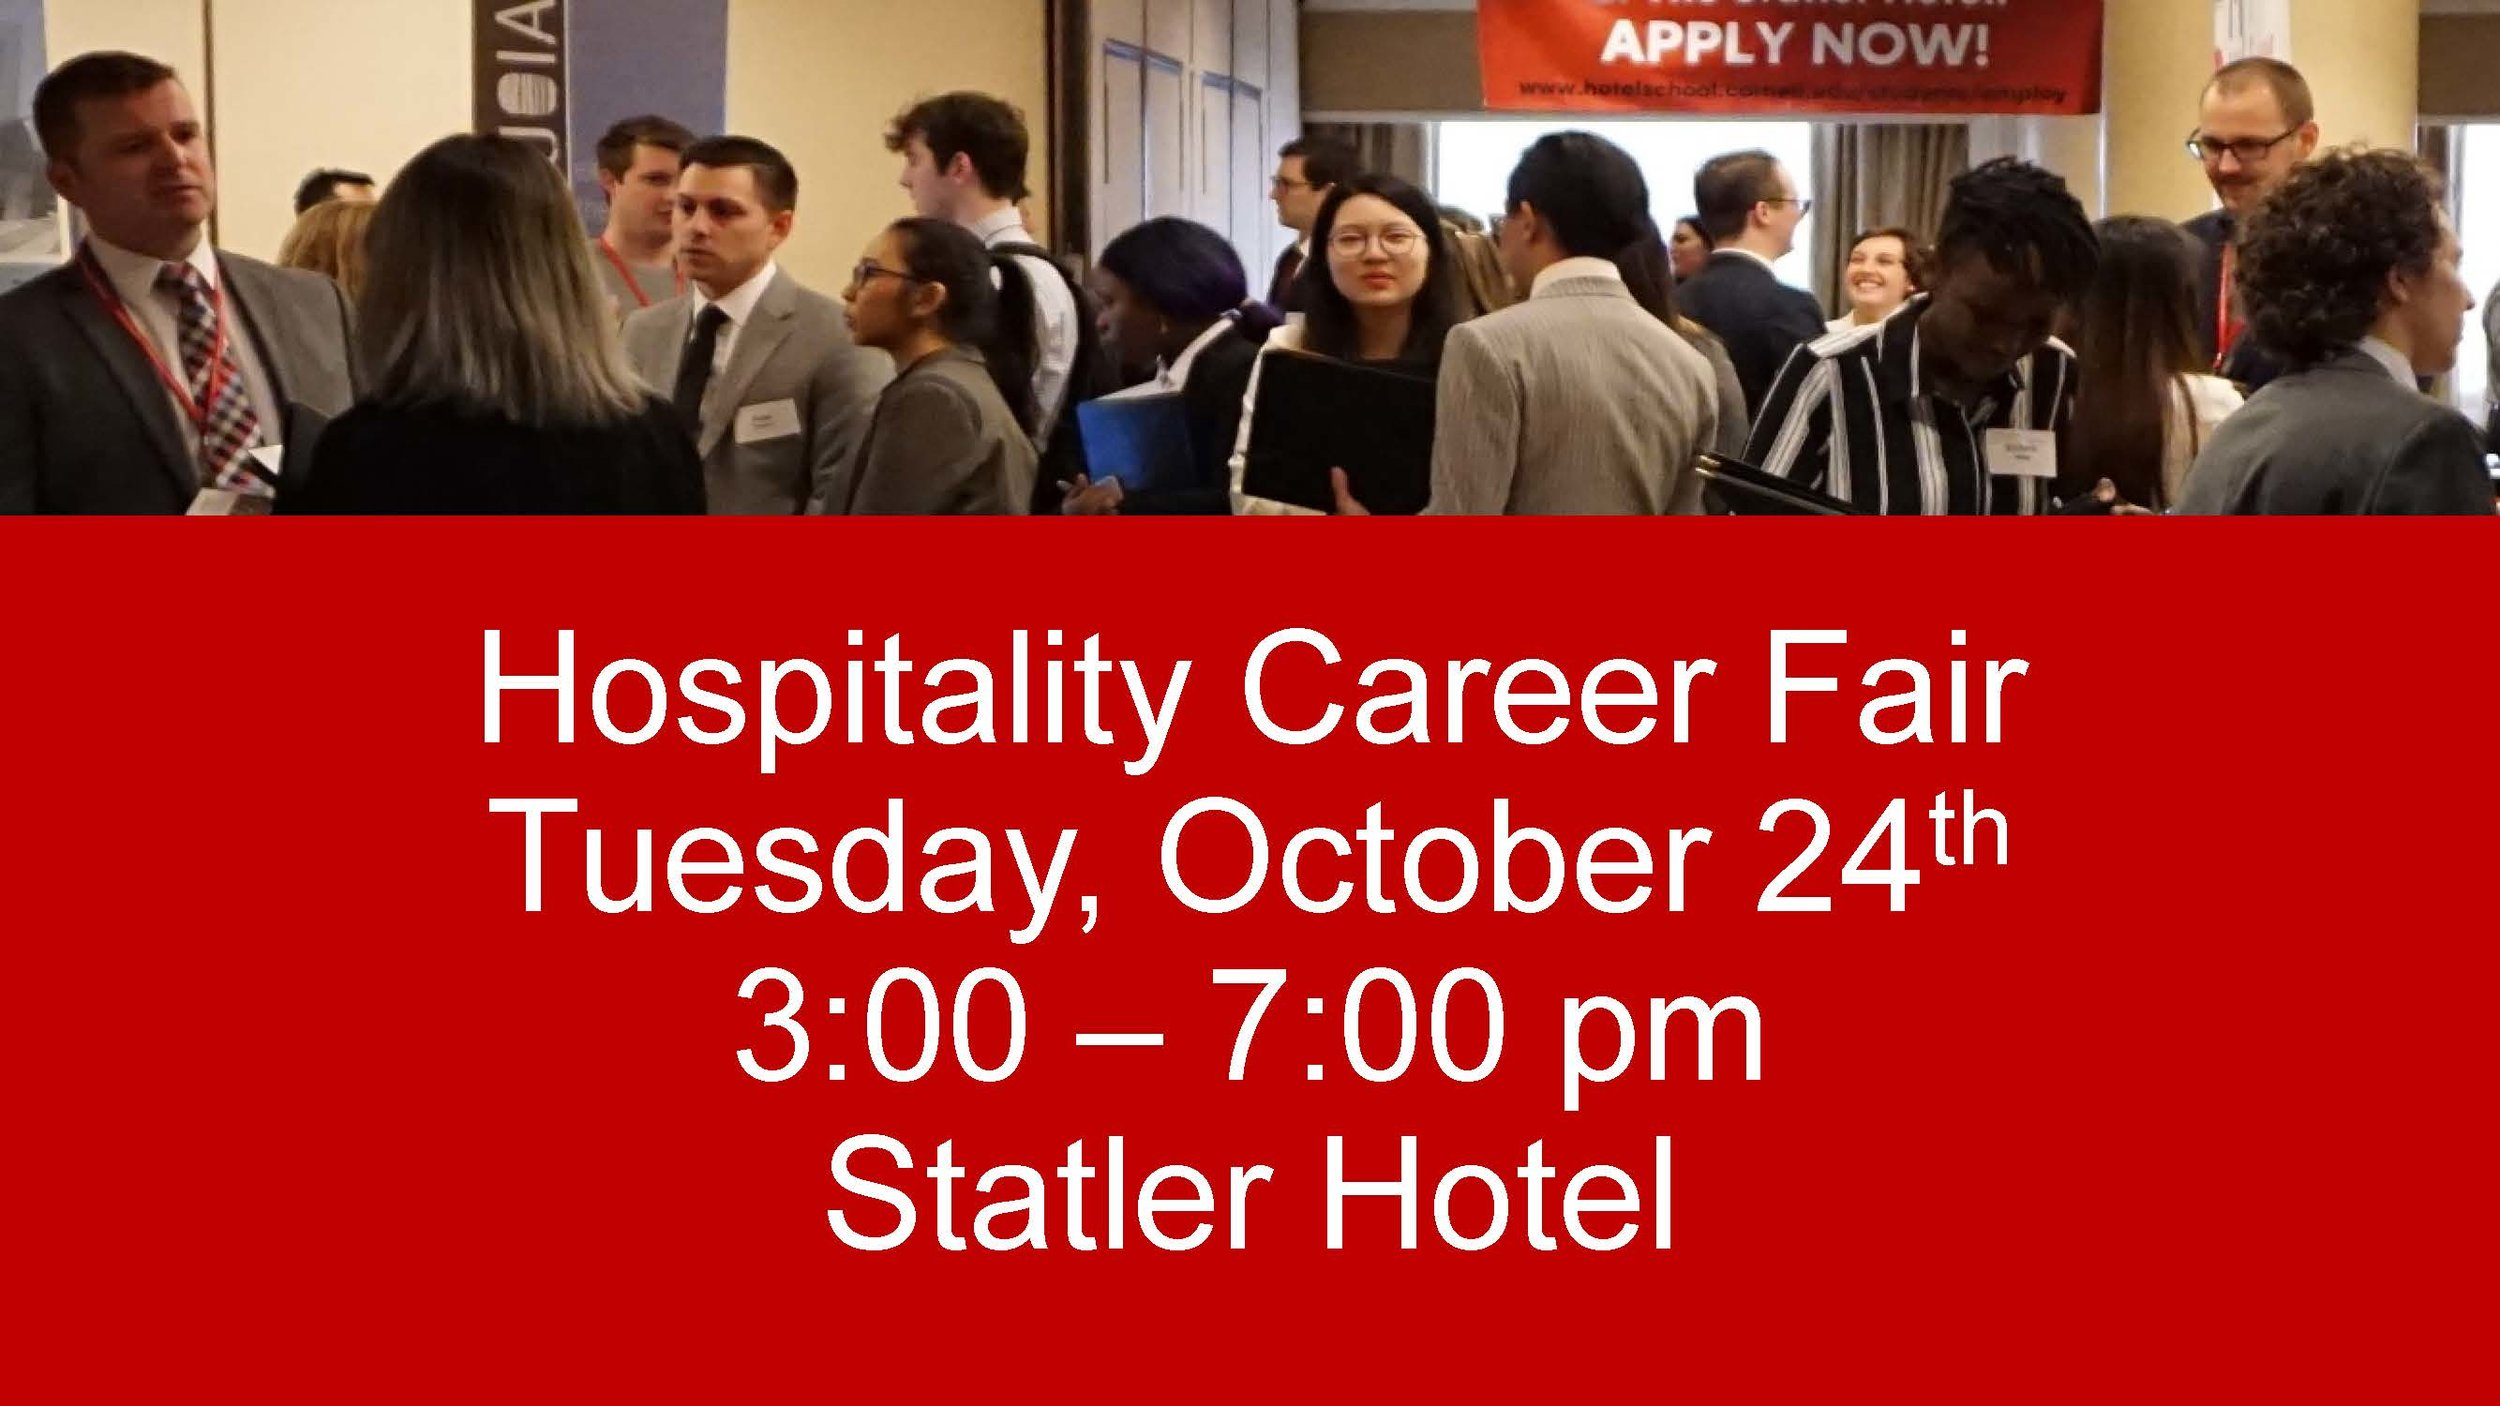 Hospitality_Career_Fair_Flyer.jpg